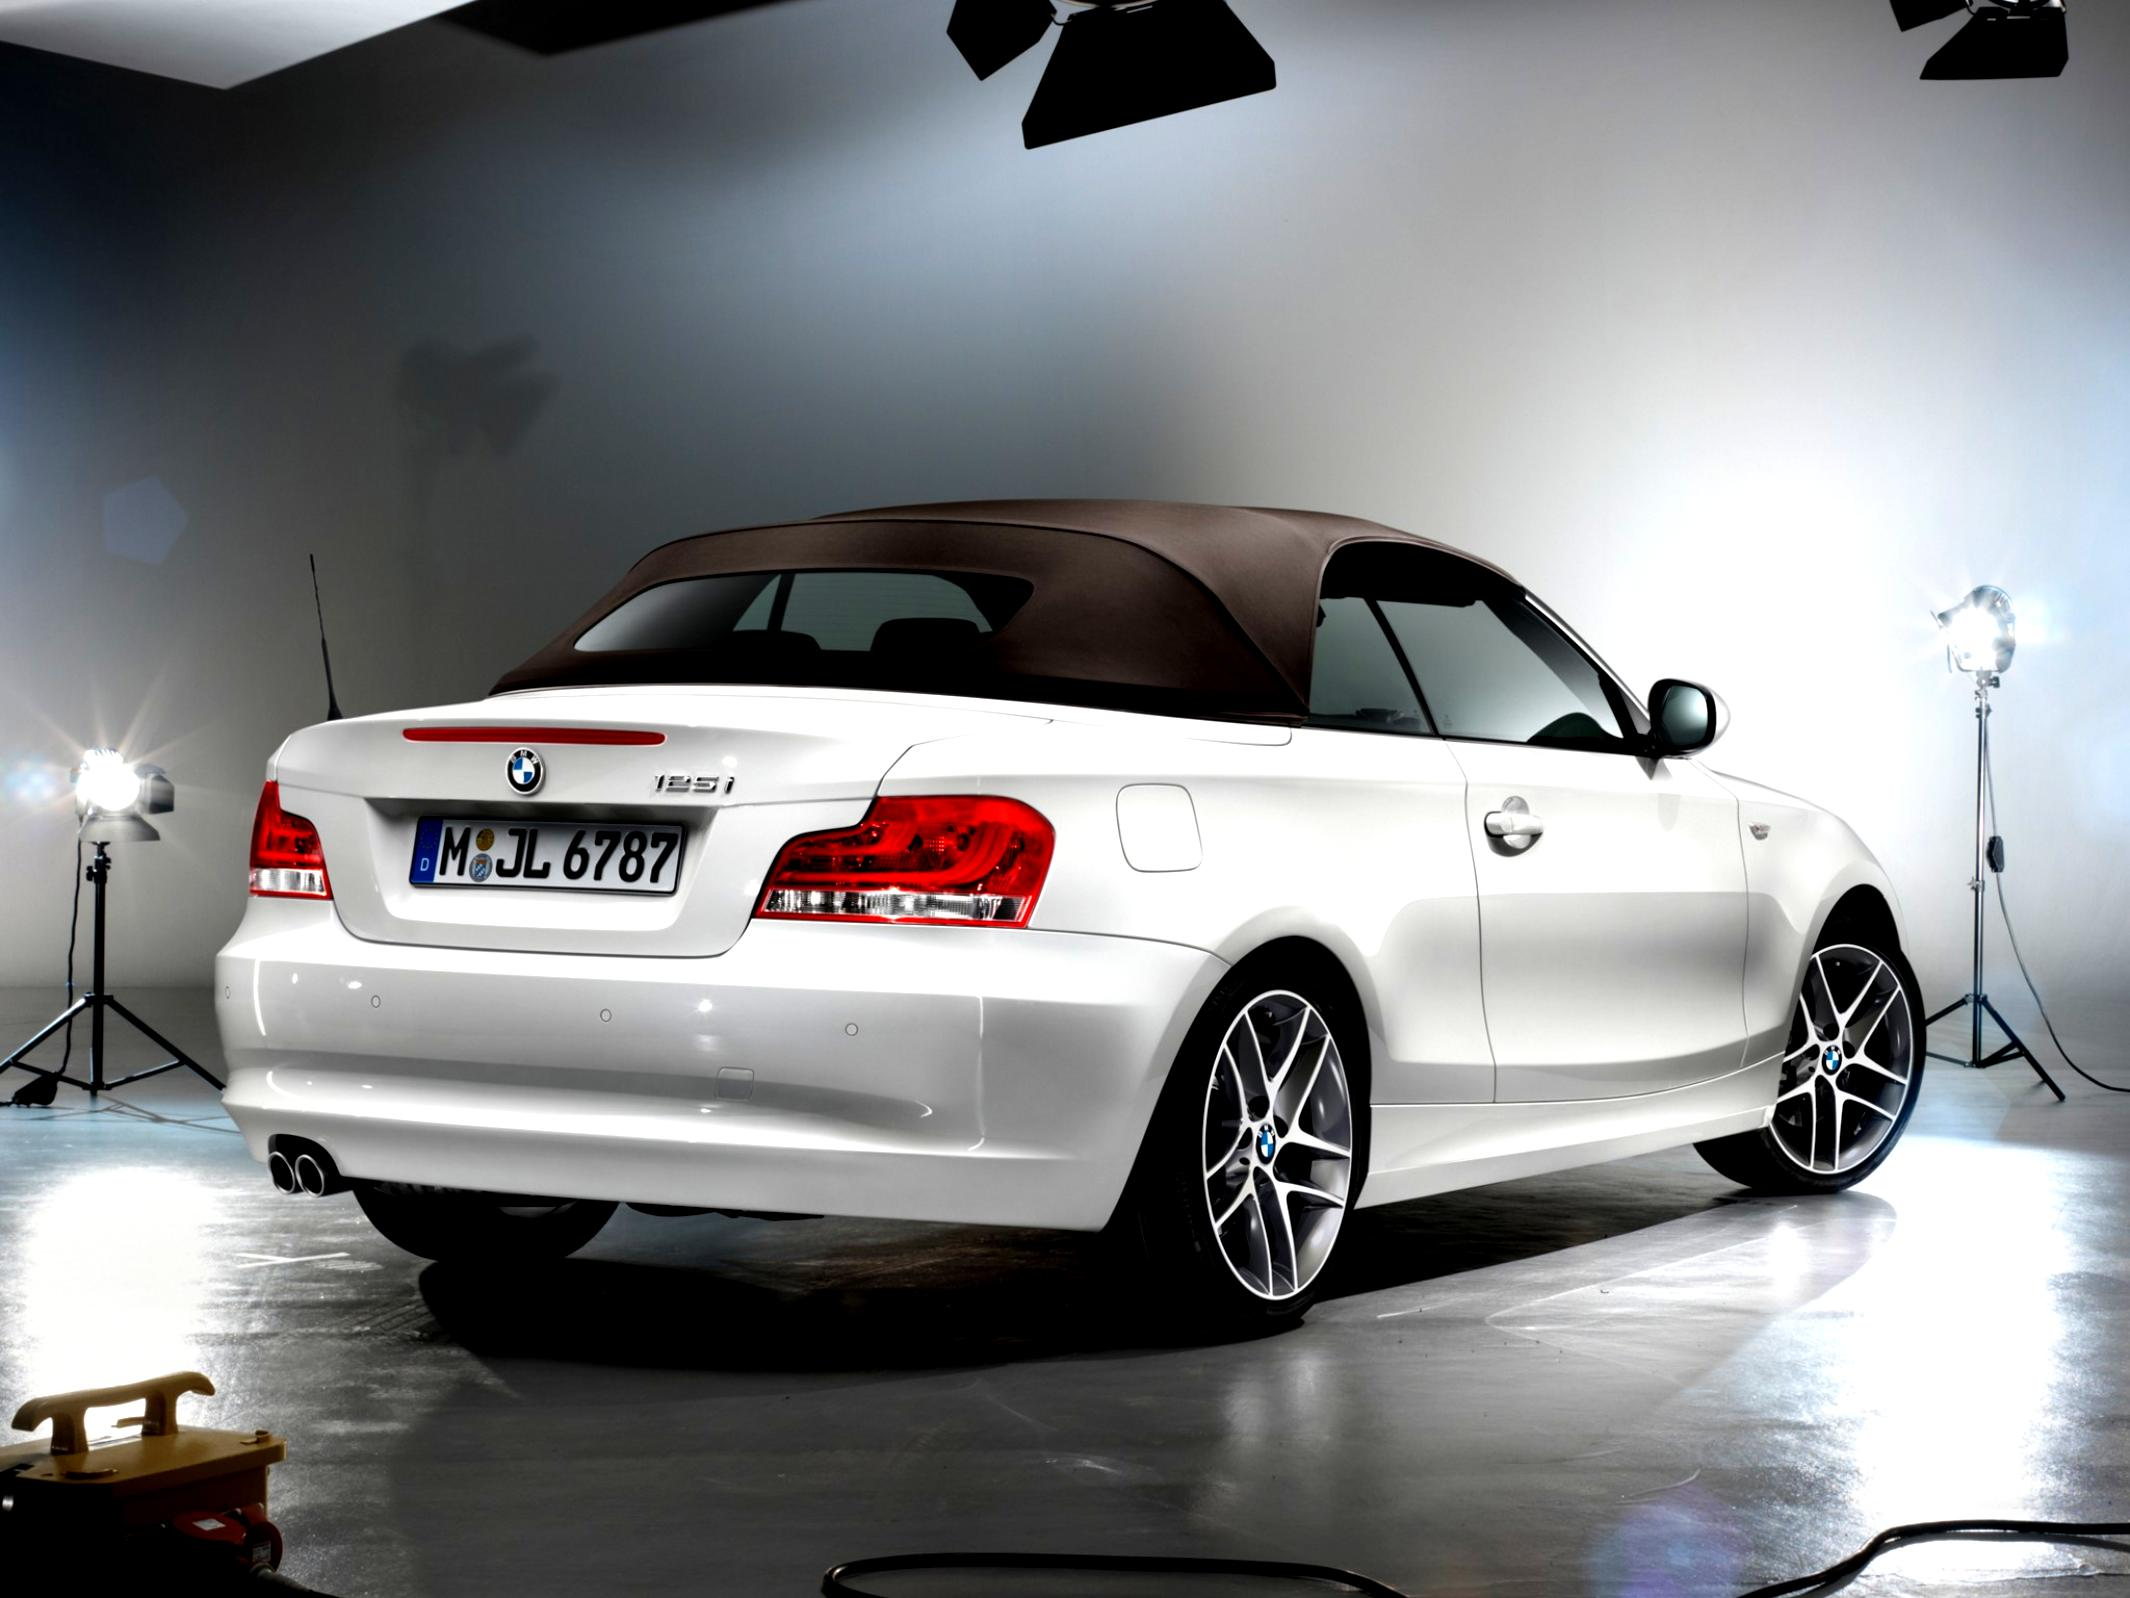 BMW 1 Series Cabriolet E88 2010 #18